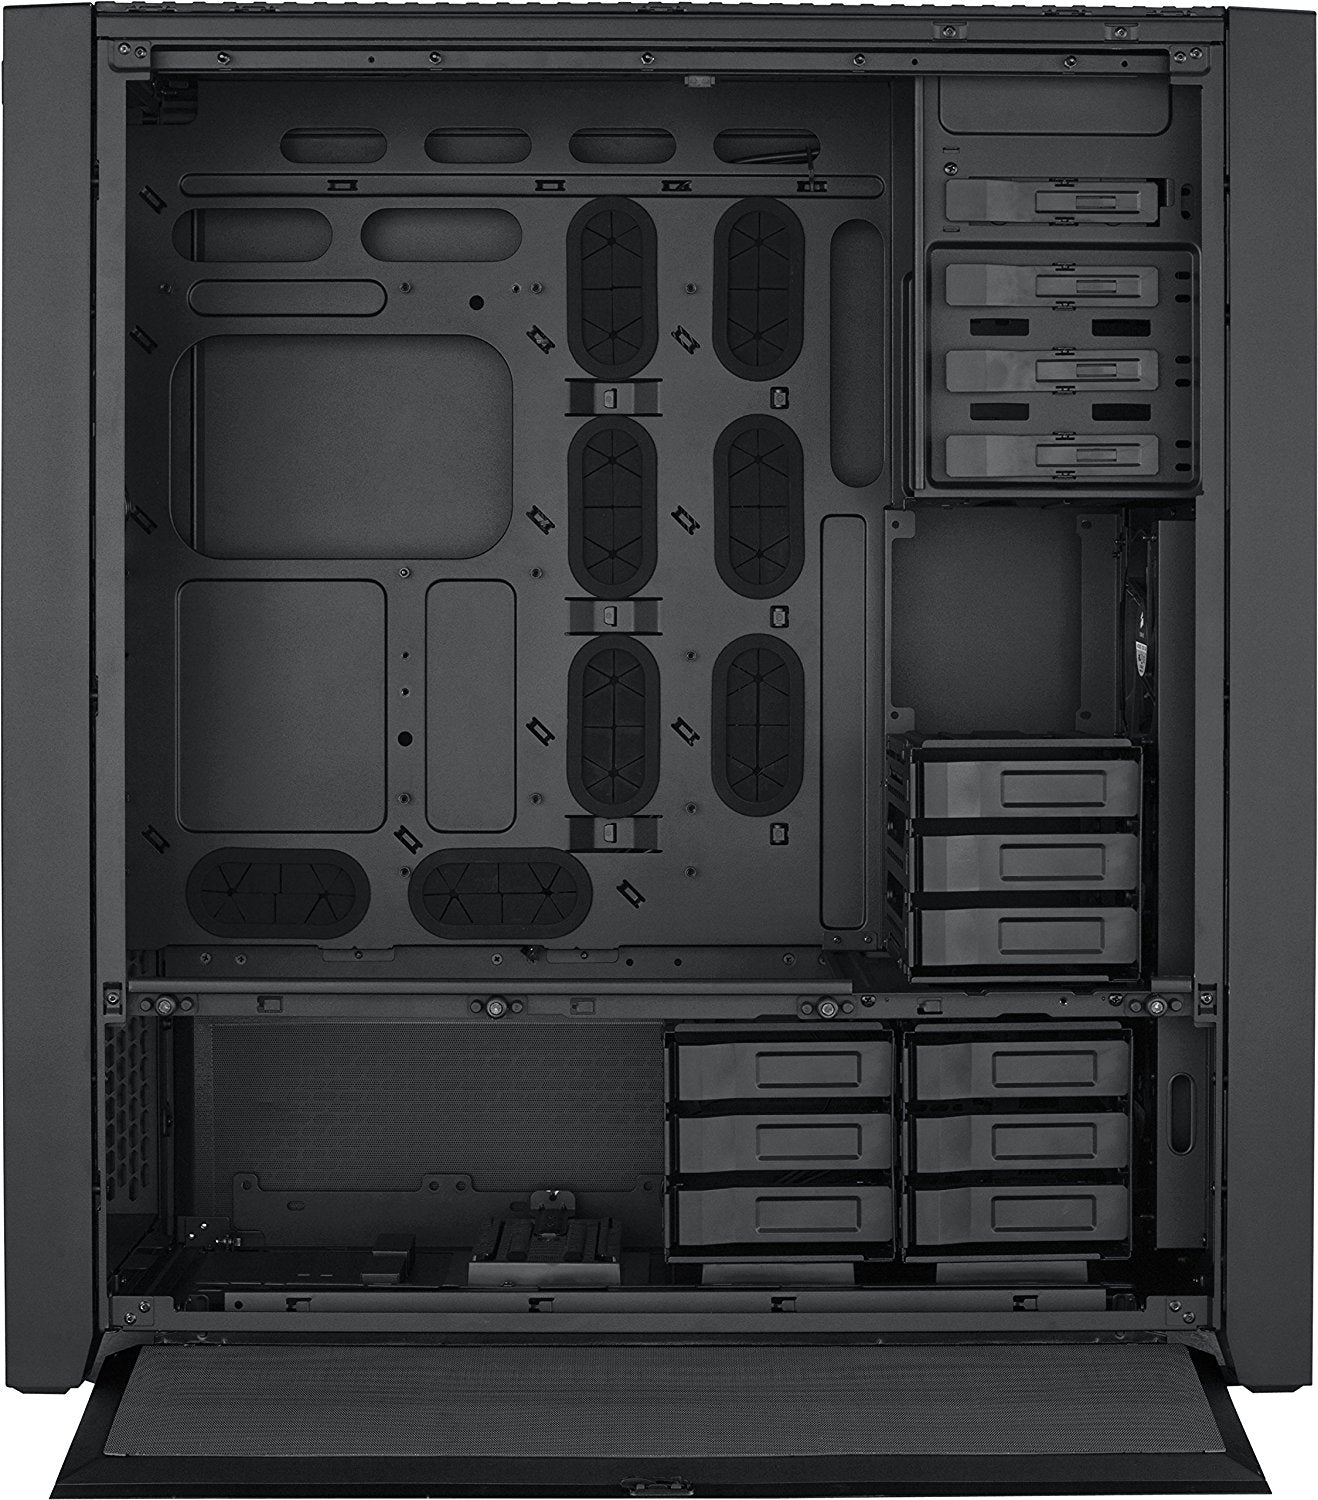 Corsair Obsidian Series® 900D Super Tower Case